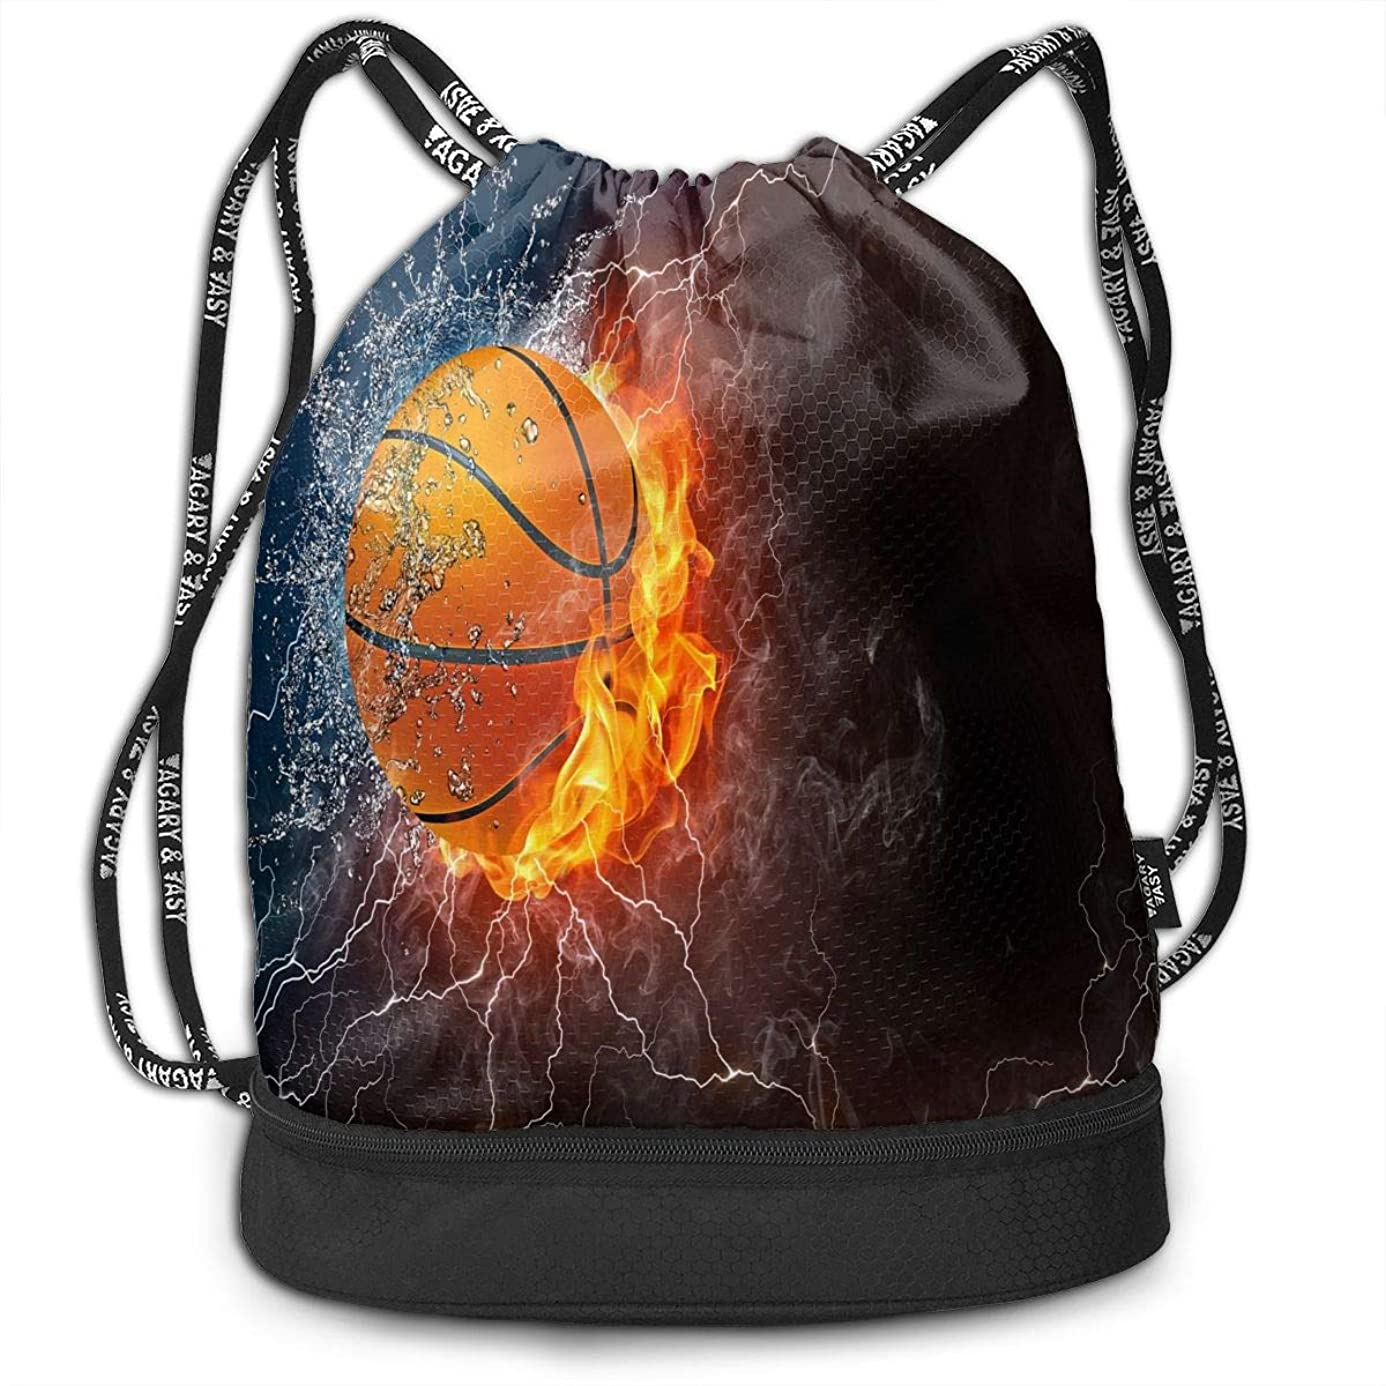 Sport Unisex Bundle Drawstring Backpack Basketball Ball Travel Durable Large Space Gym Sack Personalized Waterproof Multifunction School Backpack pdq4076540